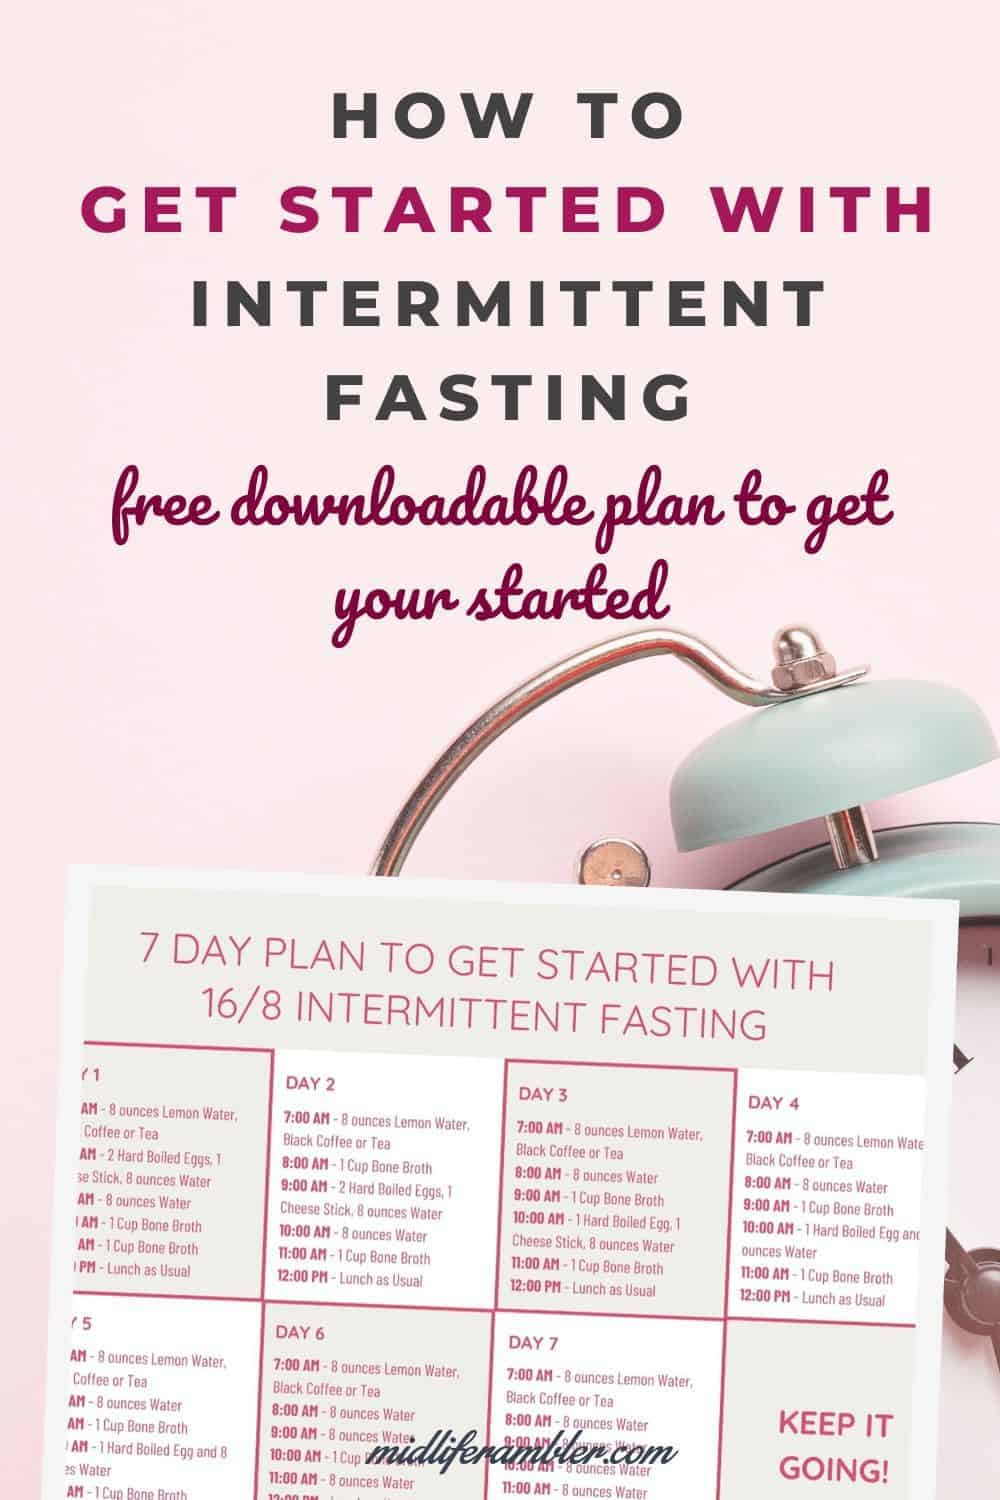 Your 7-Day Plan to Get Started with Intermittent Fasting 9